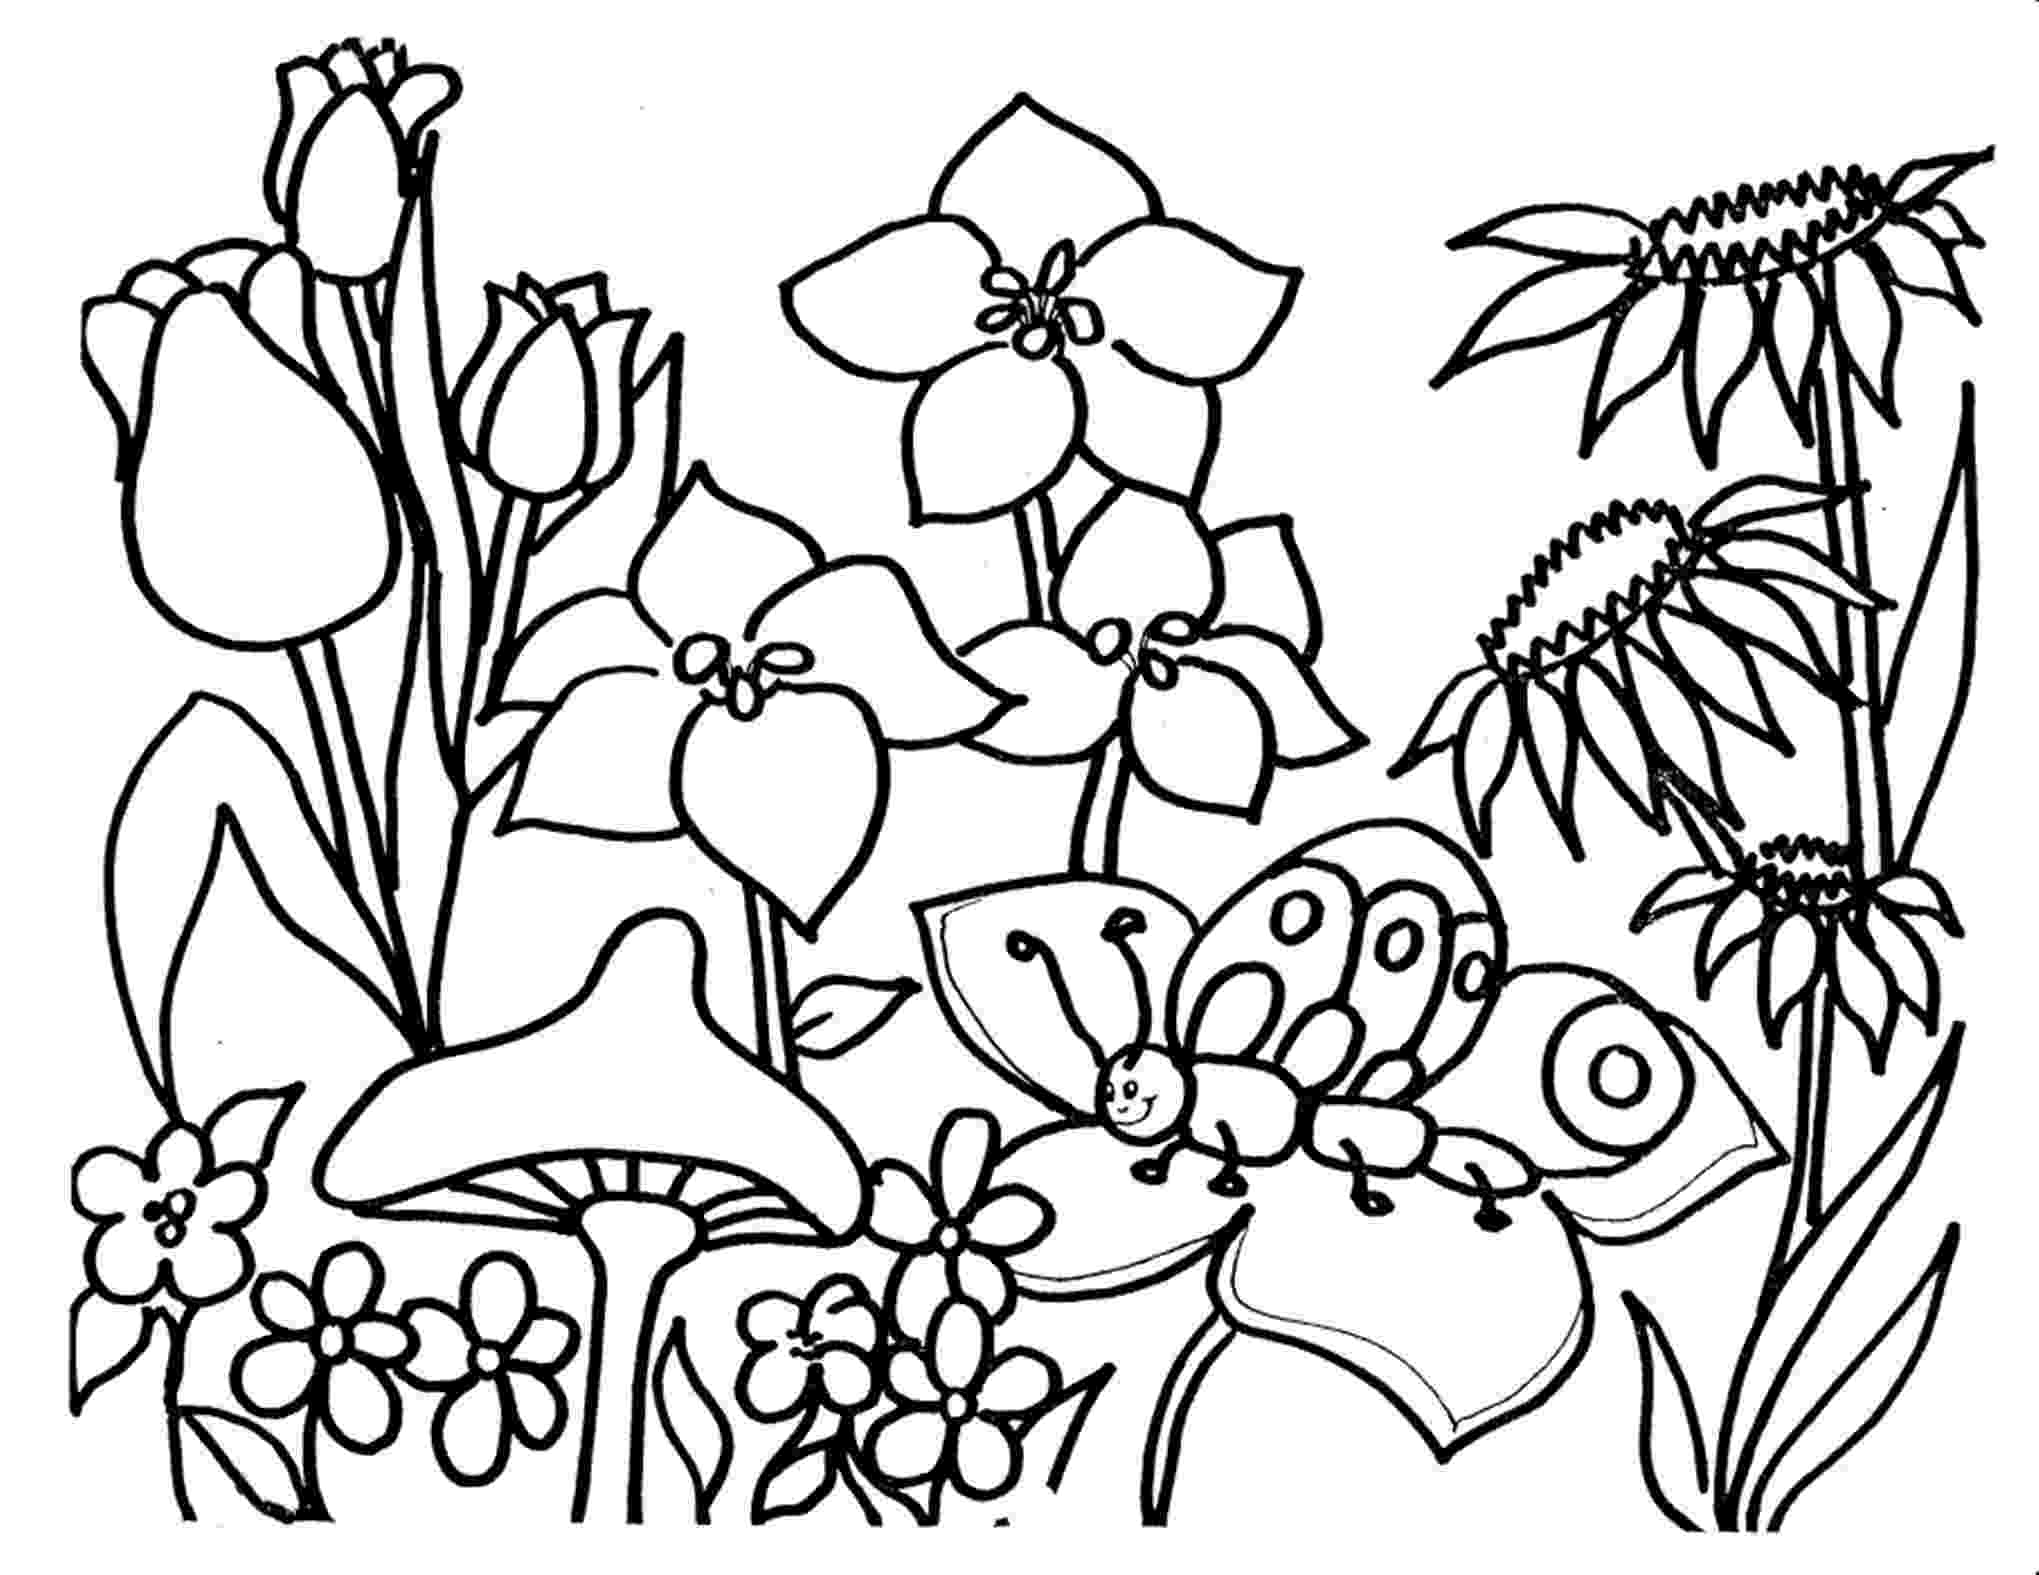 flower coloring pages printables free printable flower coloring pages for kids cool2bkids pages coloring flower printables